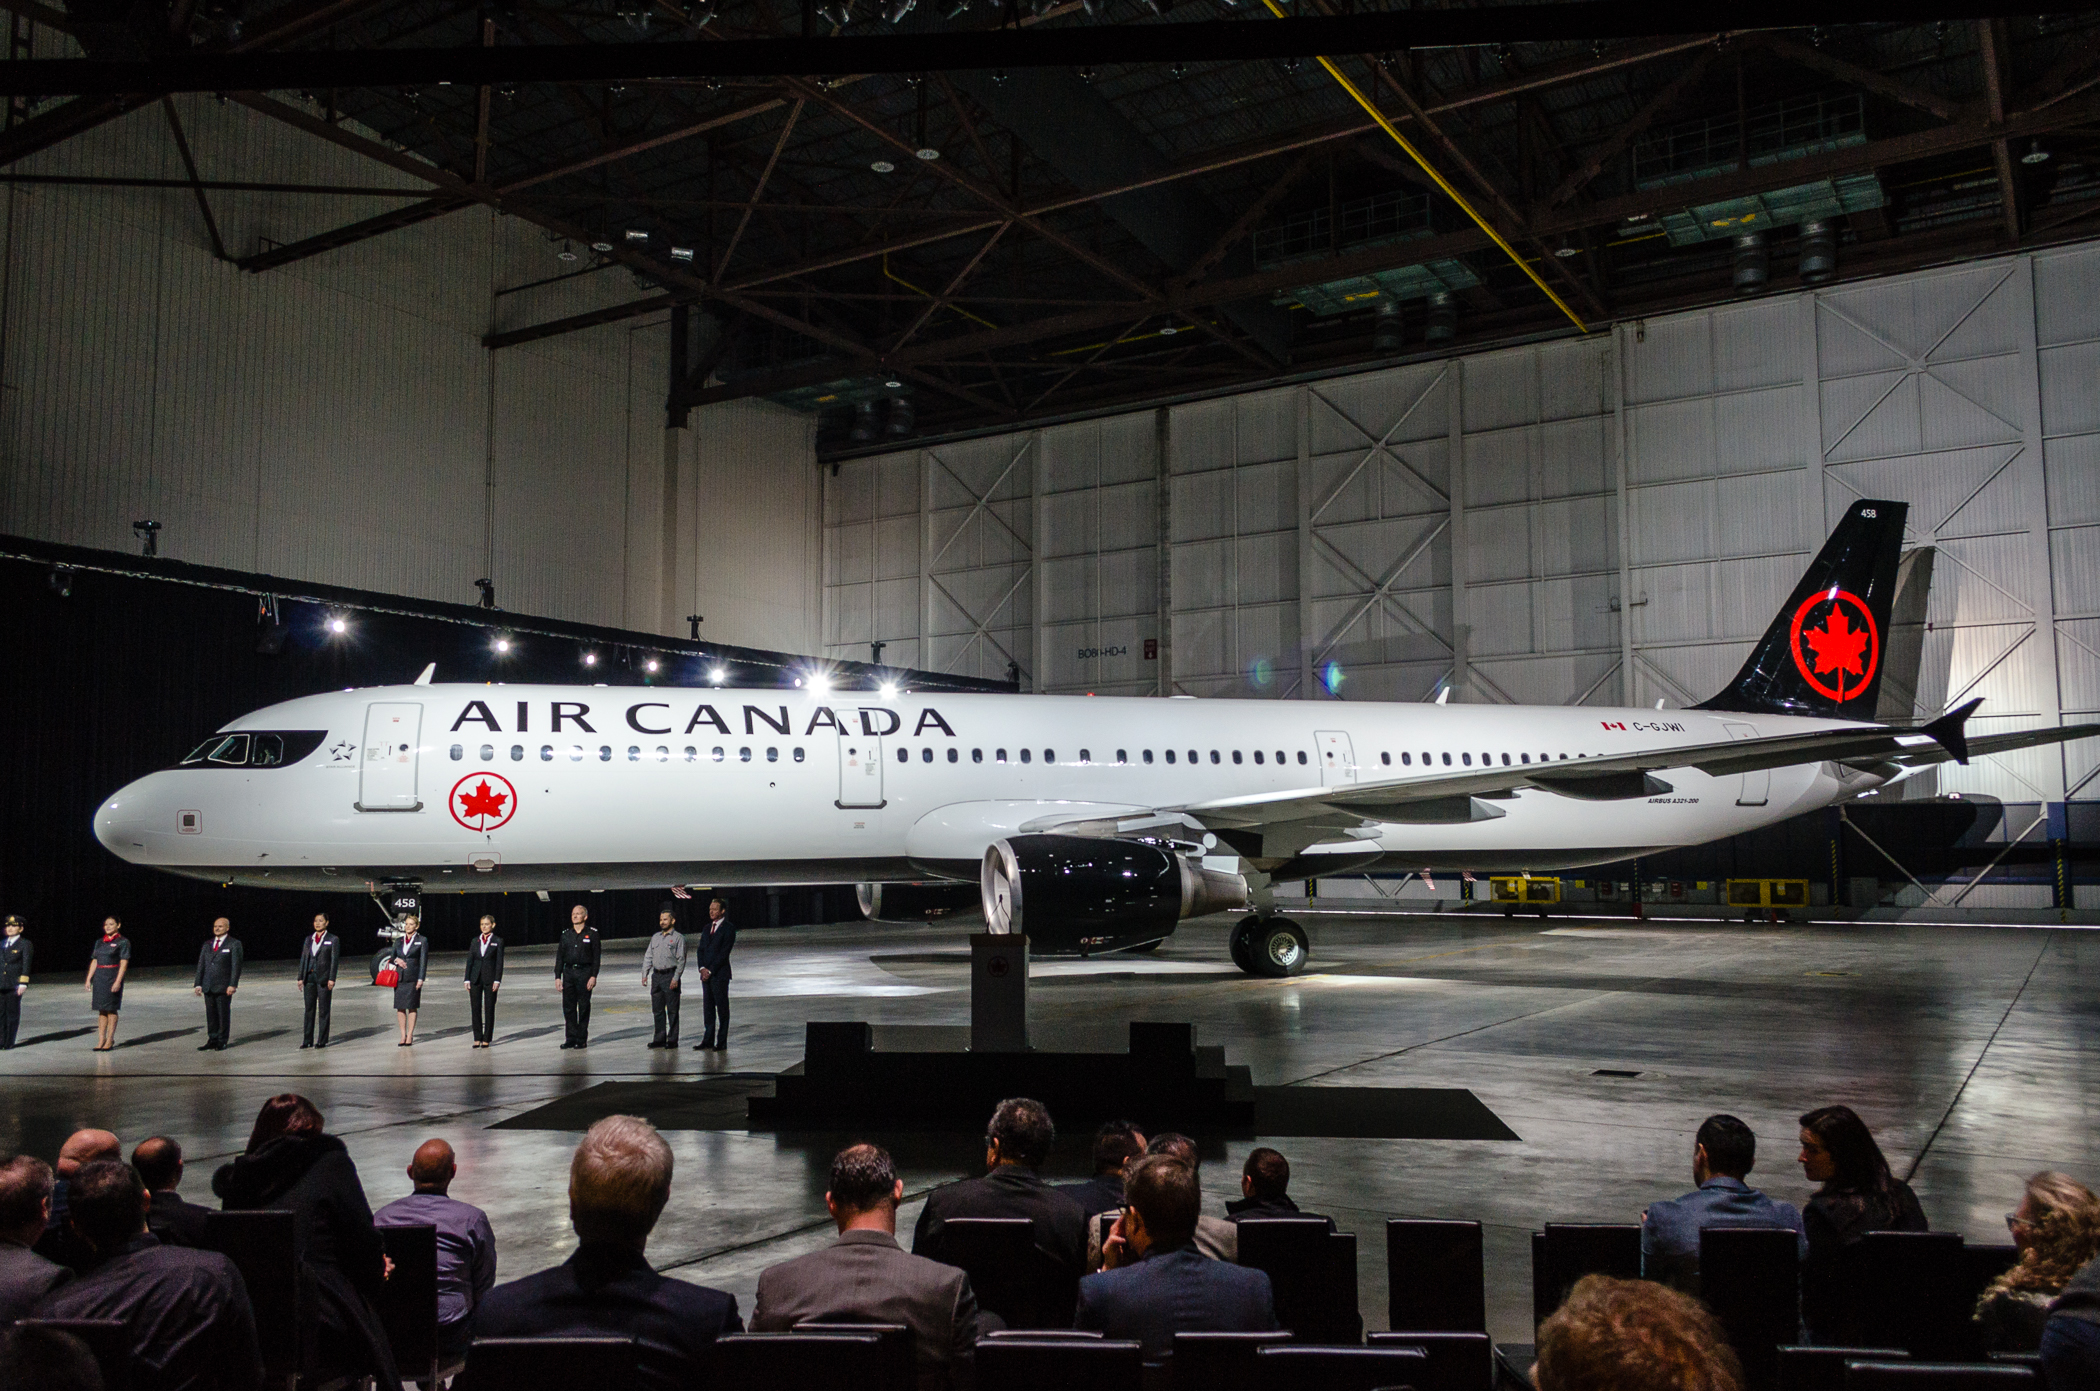 air canada Find great deals on air canada flights to canada book cheap air canada flights and make reservations with expedia.